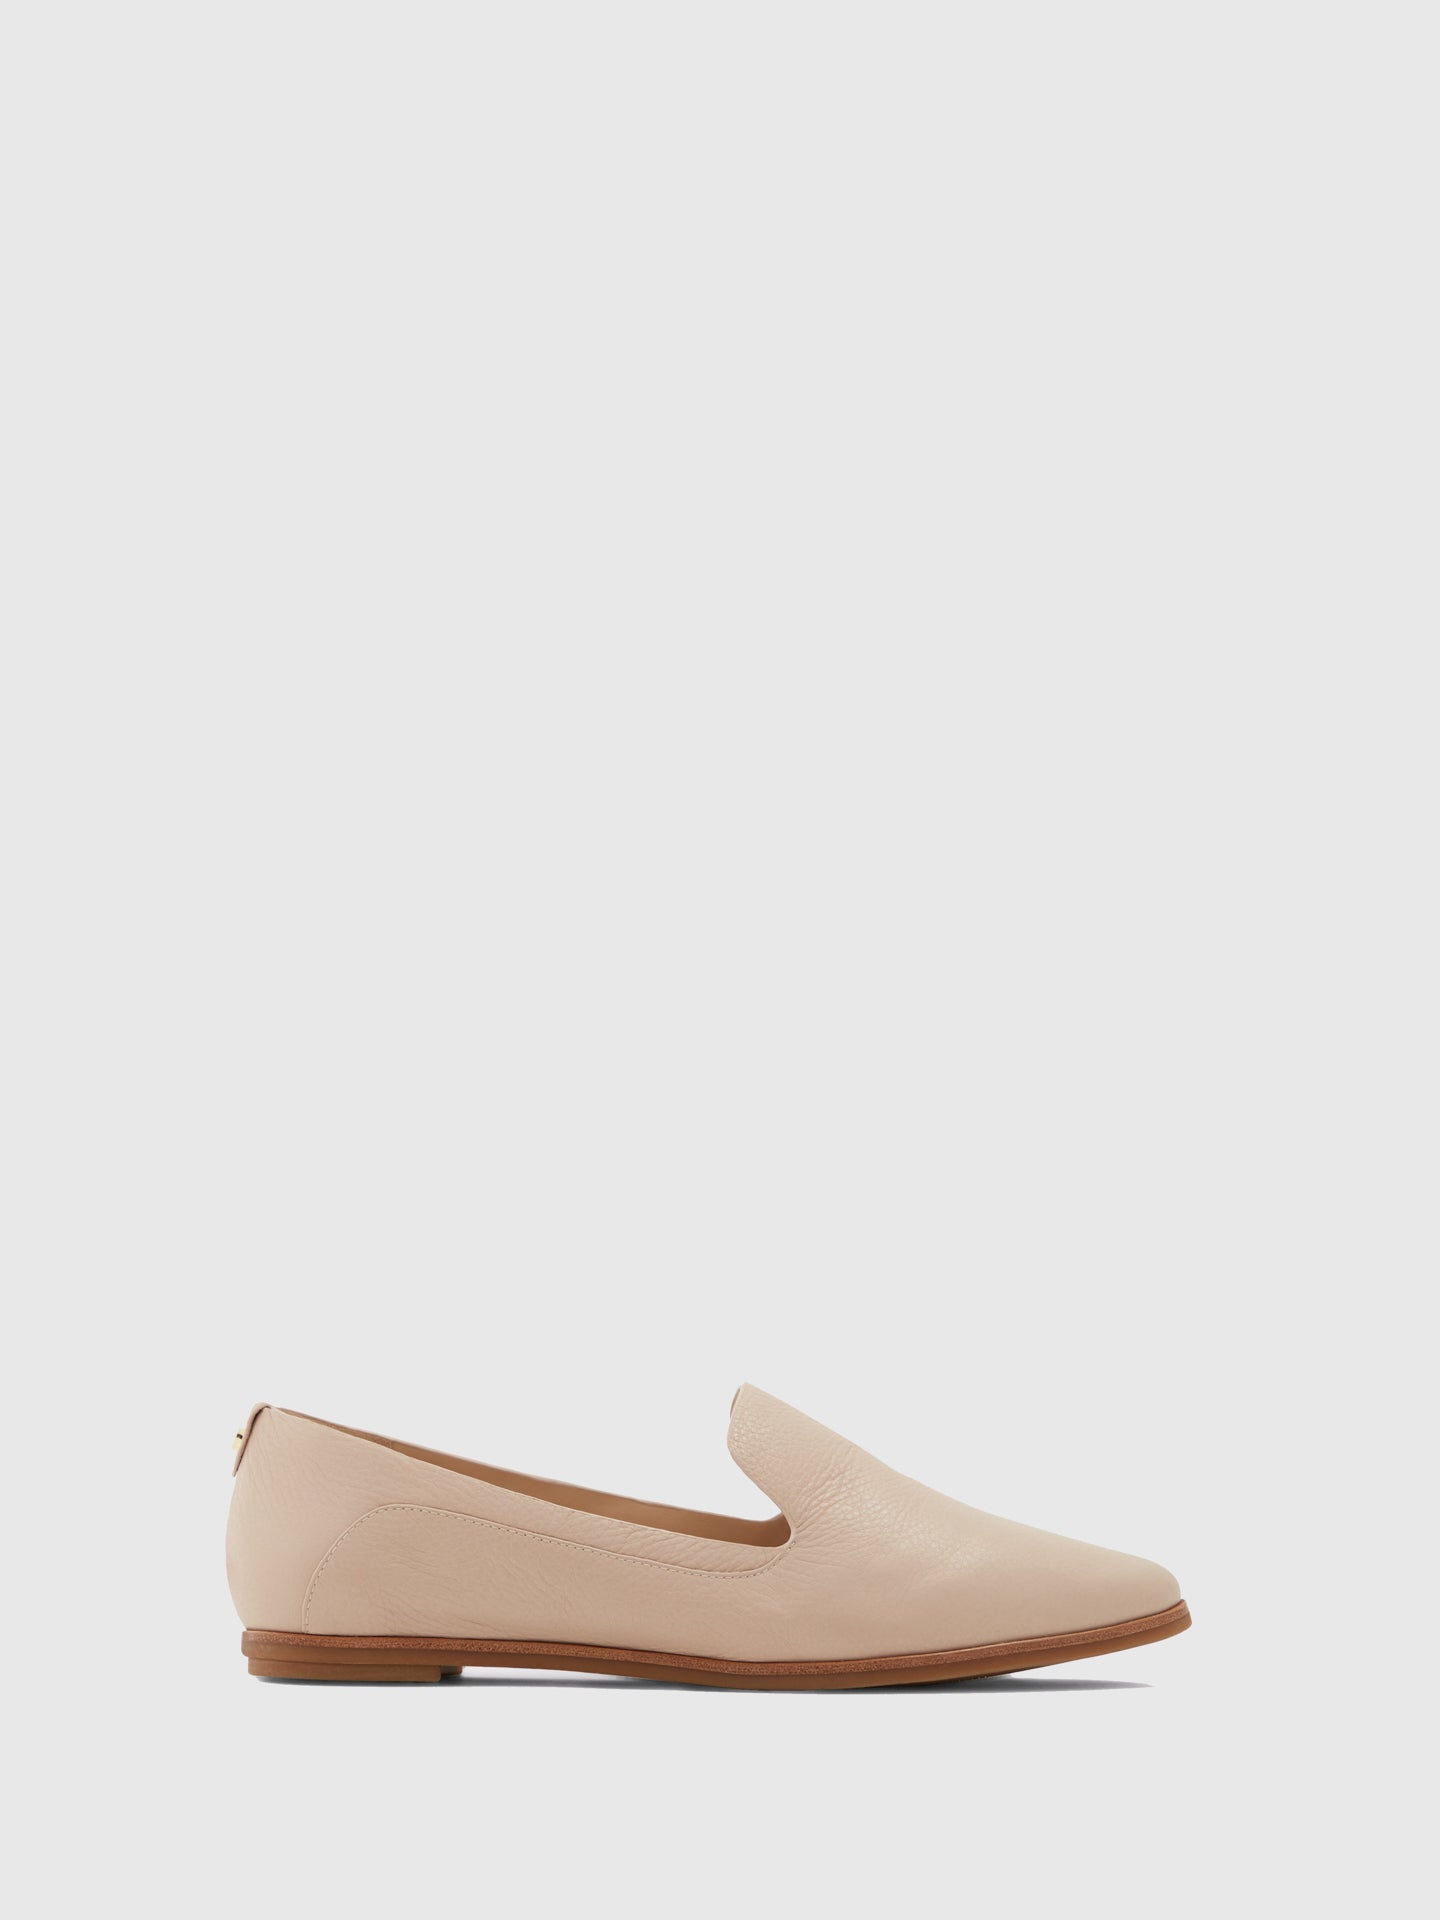 Aldo LightPink Pointed Toe Shoes